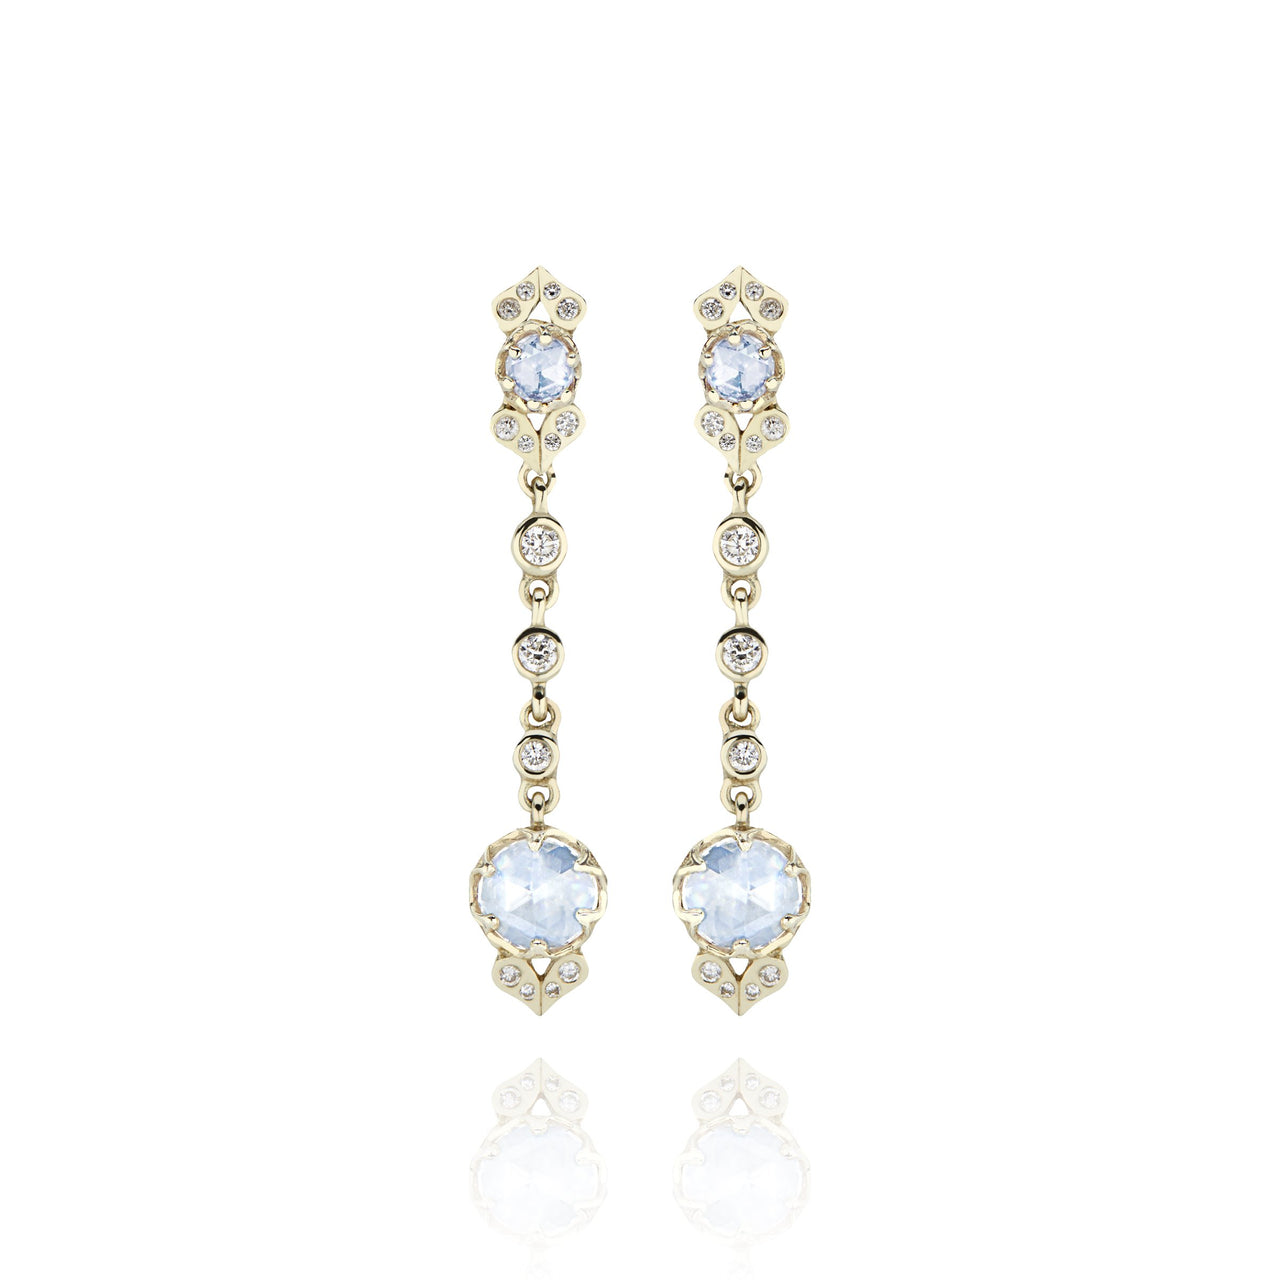 Ivy 1-Drop Cluster Earrings